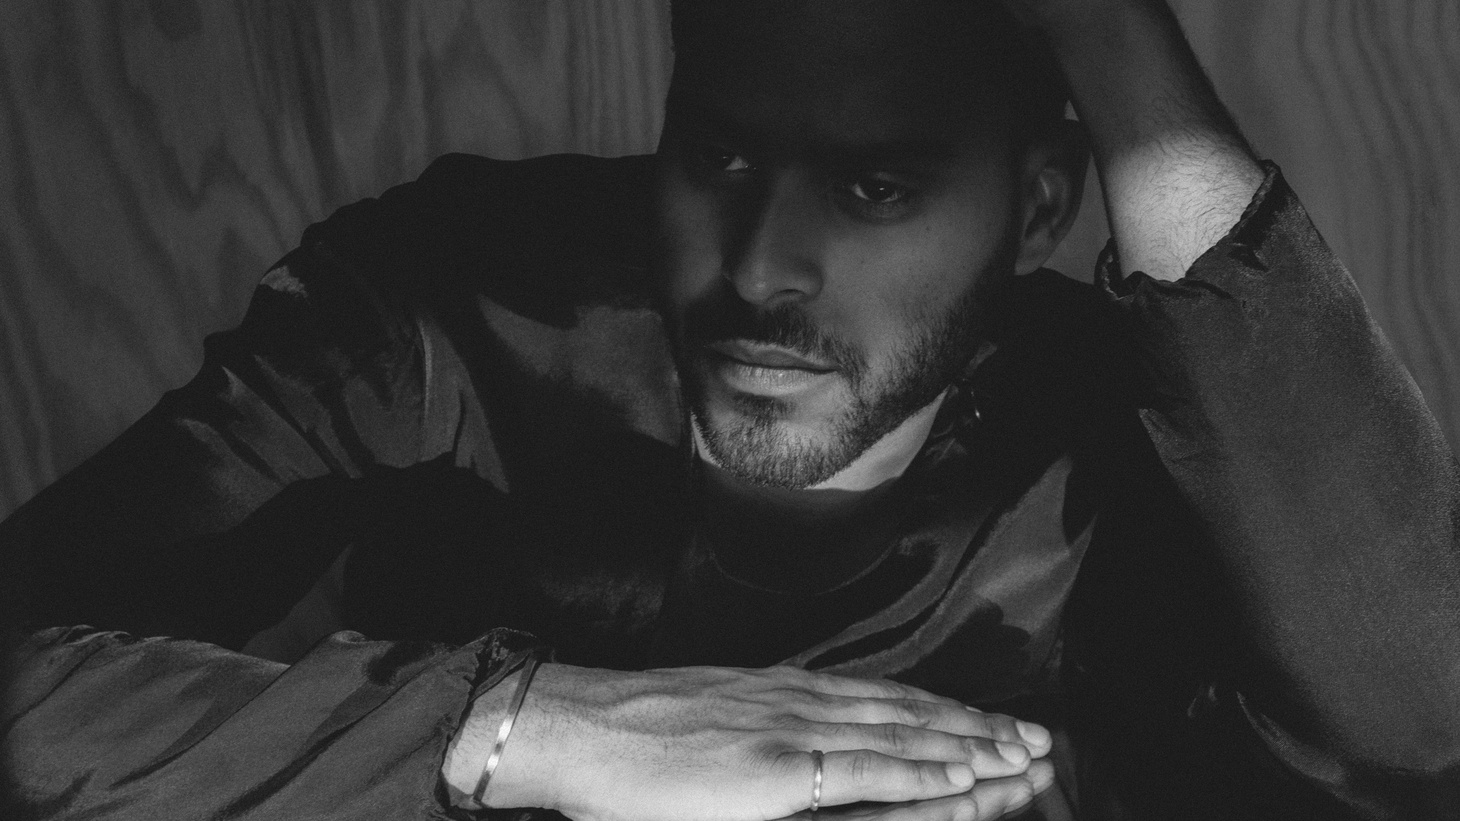 Brooklyn indie pop sensation Twin Shadow continues to examine life through revved up guitars, darker ballads, and moody New Wave tracks.The first stop on his upcoming tour will be a live set onMorning Becomes Eclectic at 11:15am.